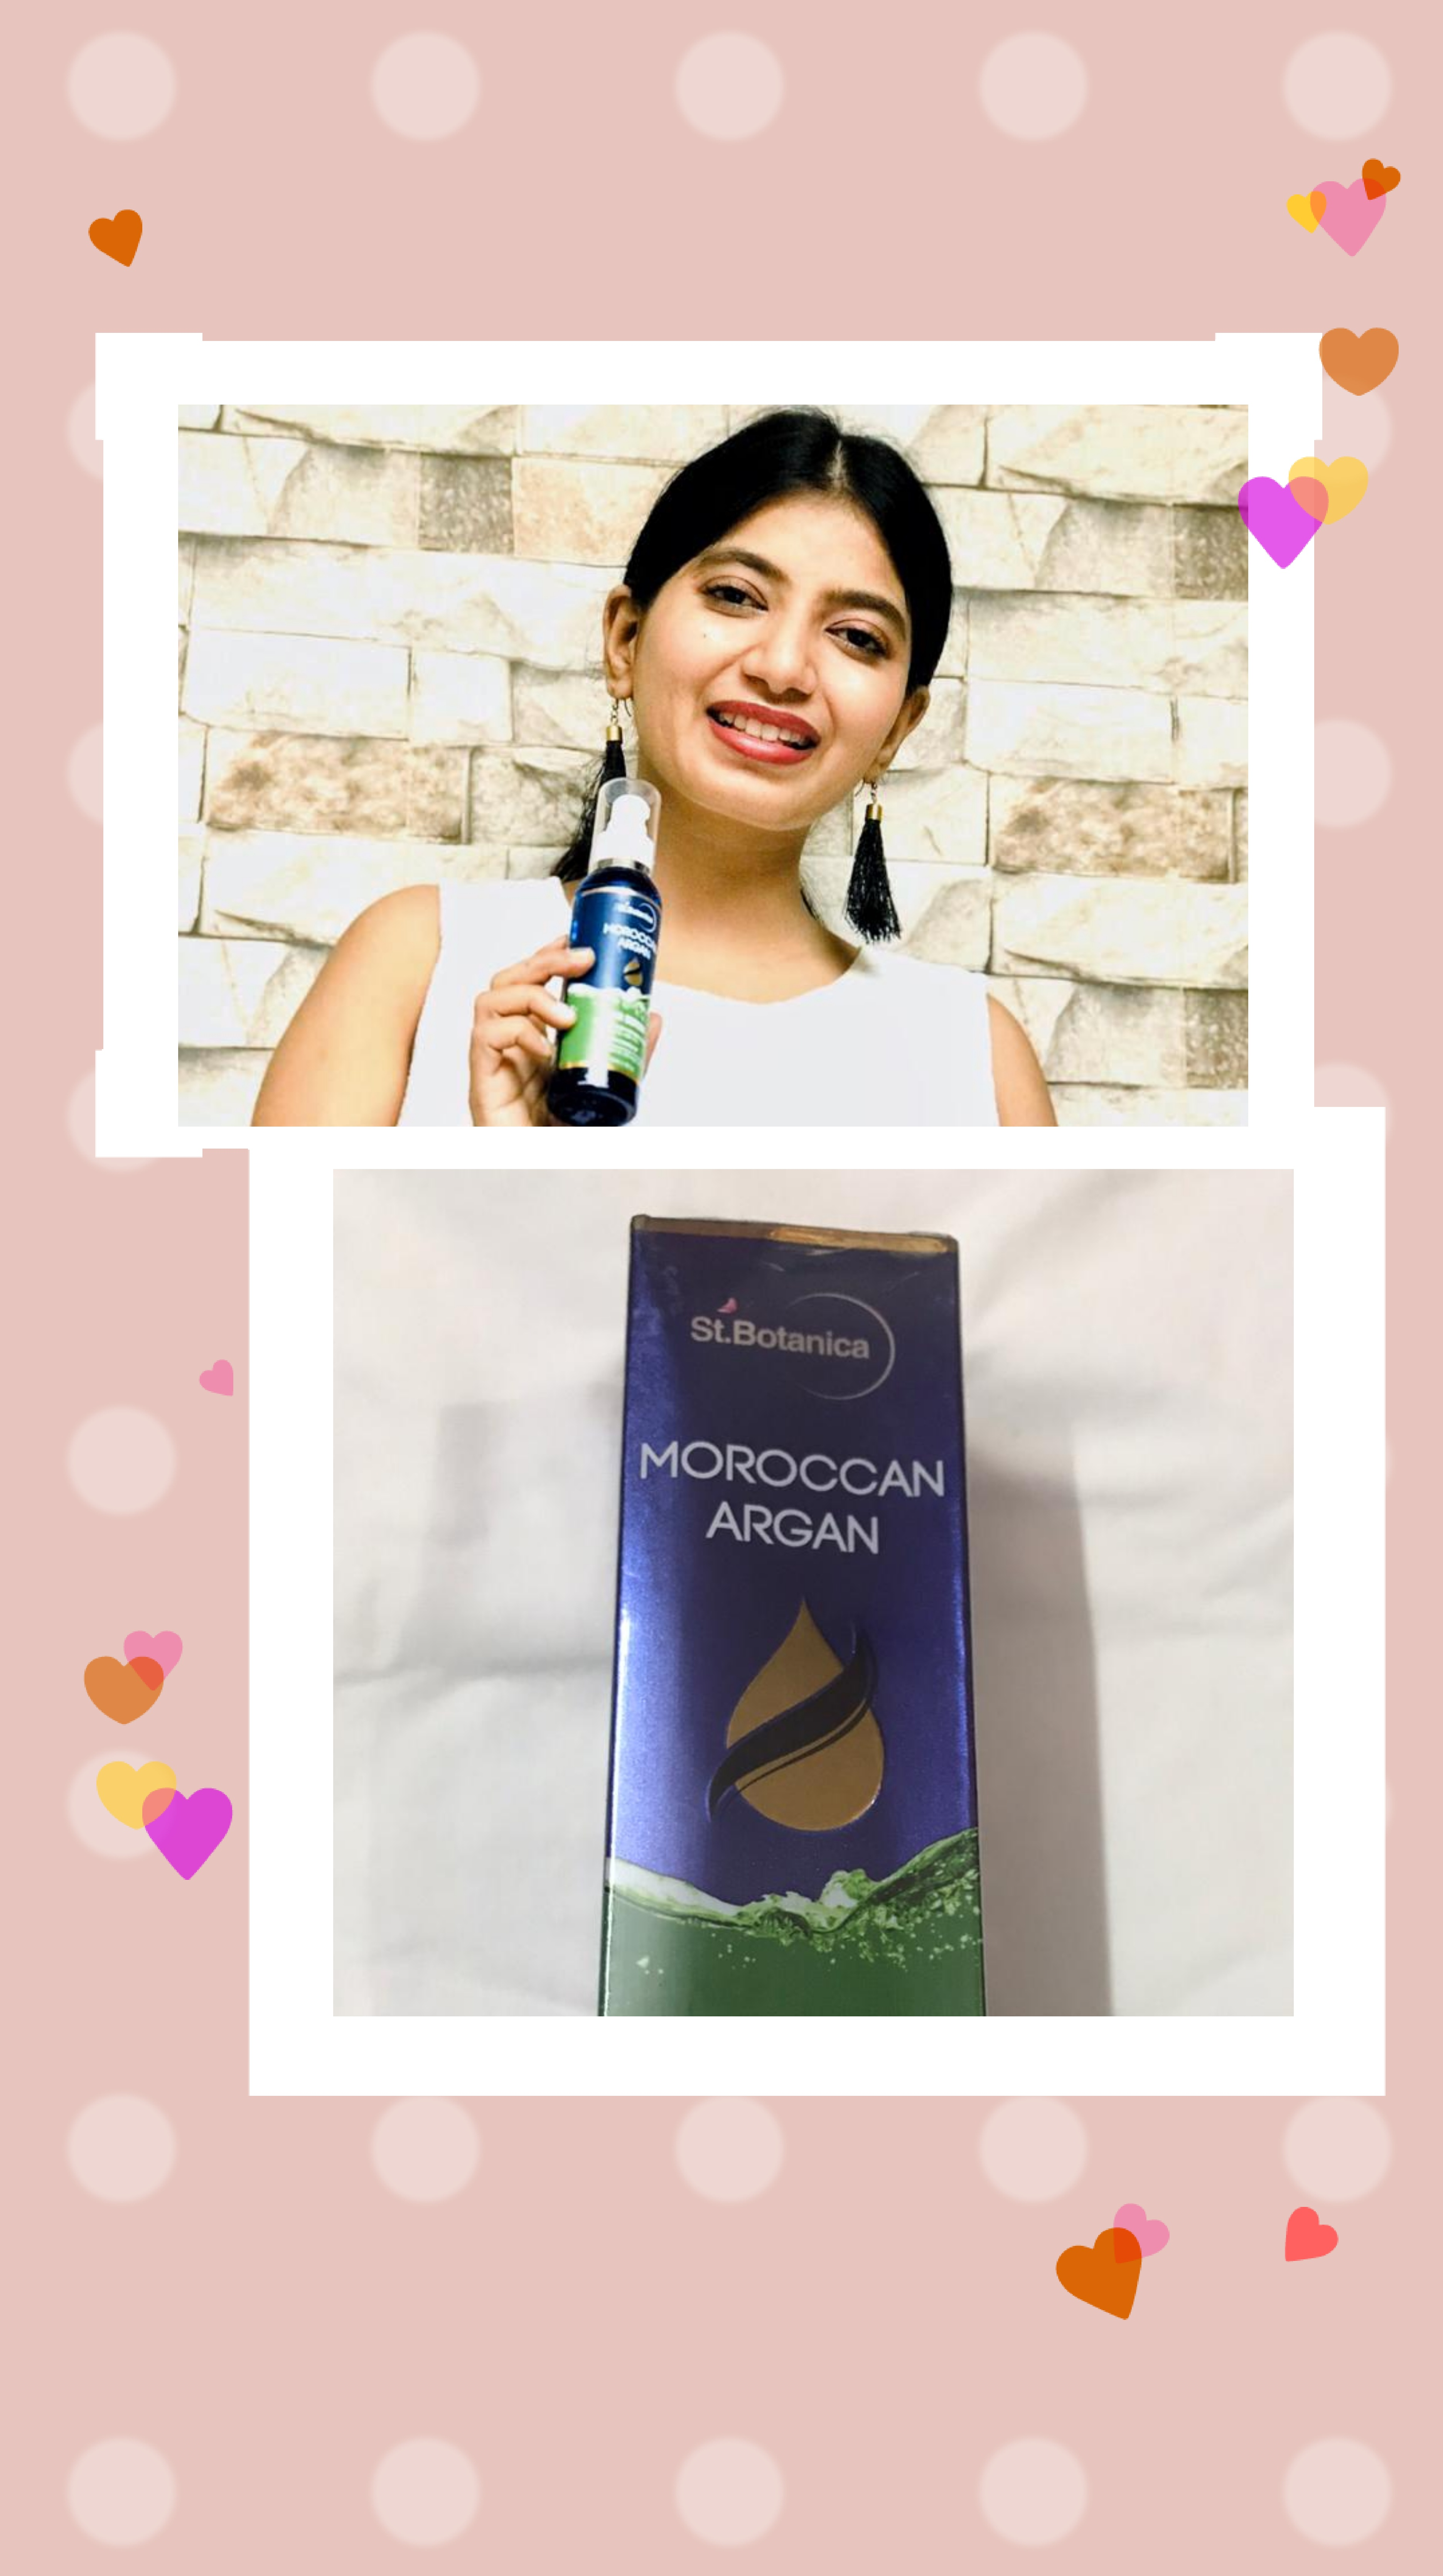 St.Botanica Moroccan Argan Hair Serum pic 2-Best Hair serum for frizzy-By lifecareroutines